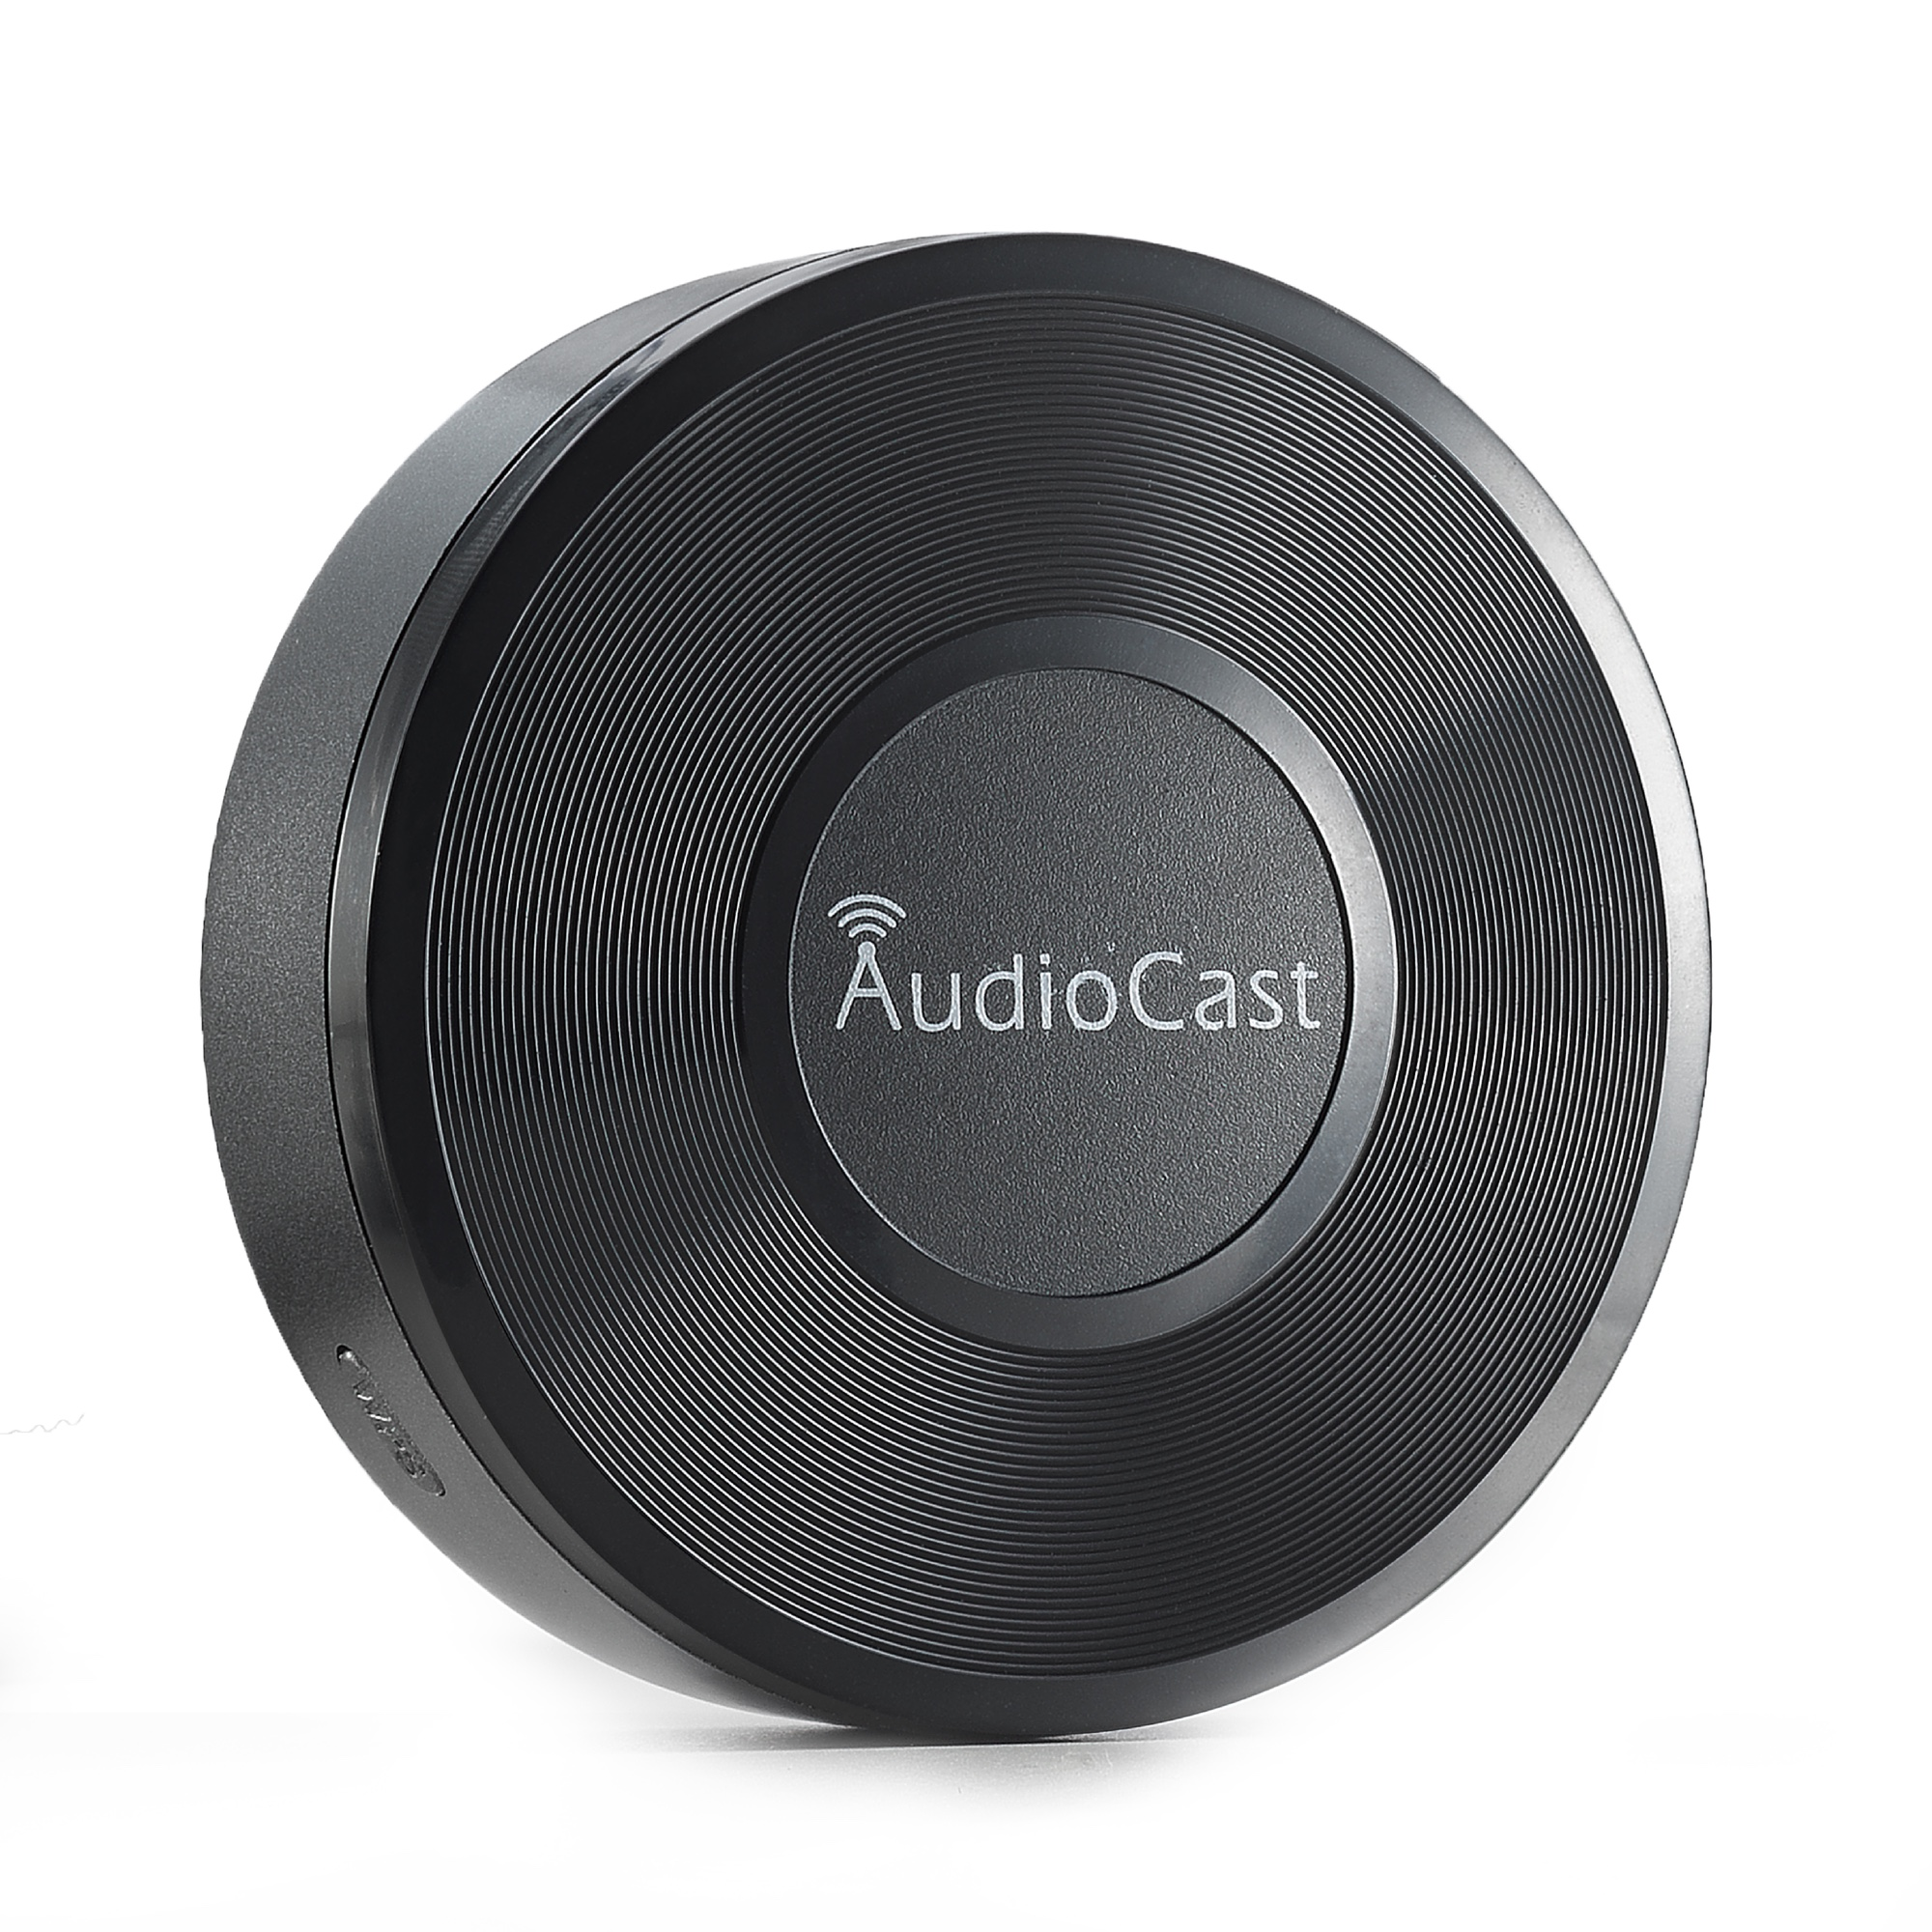 Chromecast Audiocast M5 Transmitter Supporting Dlna Airplay Spotify  Iheartradio Stream Audio To Speaker Systems Via Wifi - Buy  Chromecast,Airplay